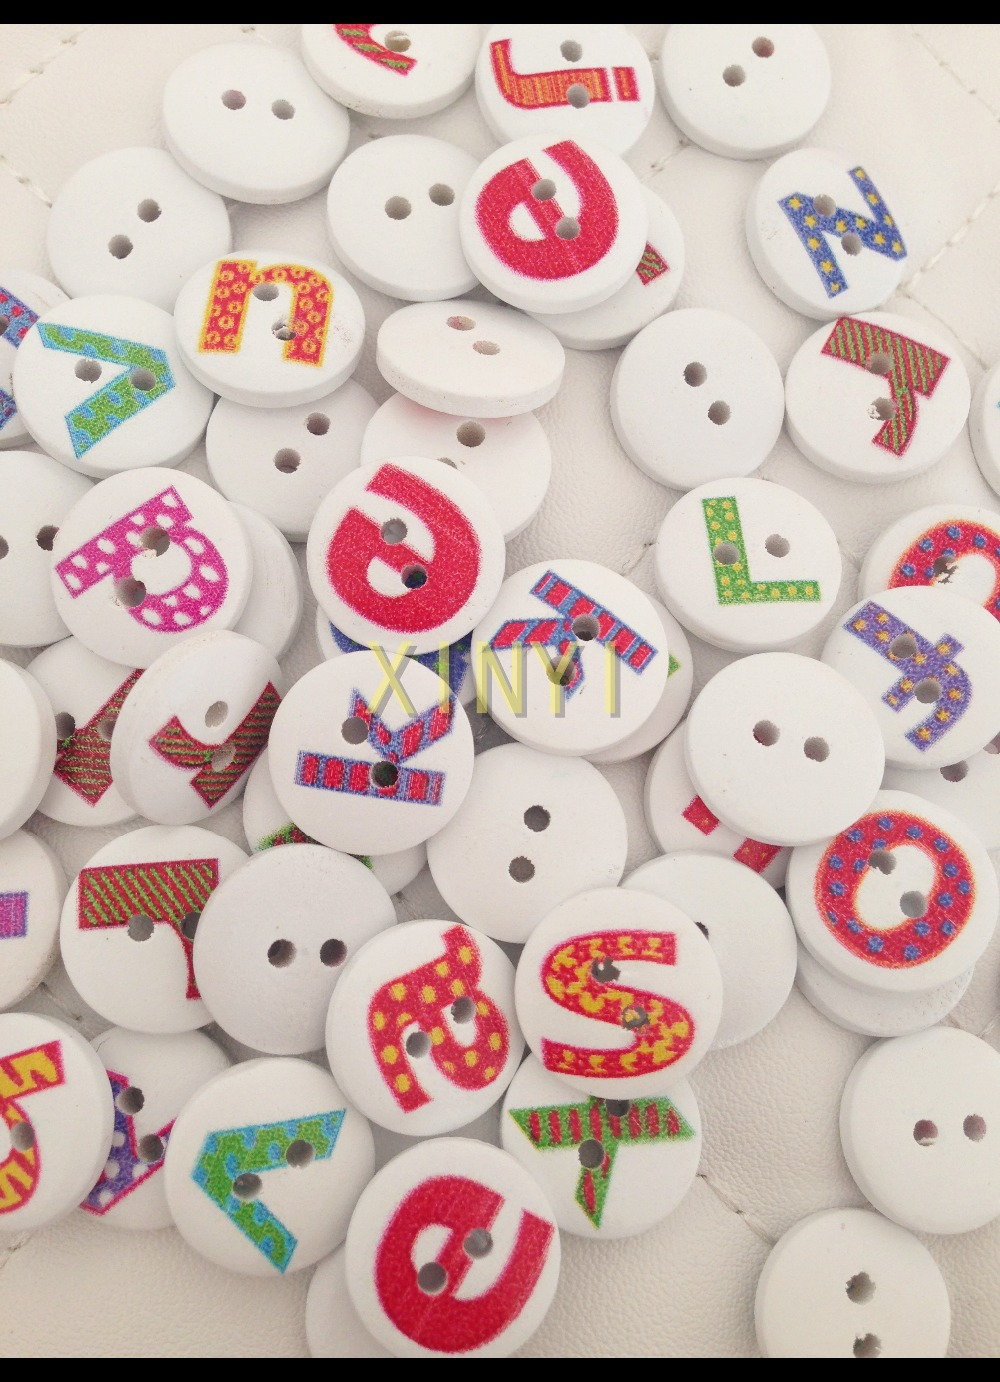 200pcs 15mm lovely cartoon multicolor 26 letters painted pattern wooden bead diy craft home decorative kids toys